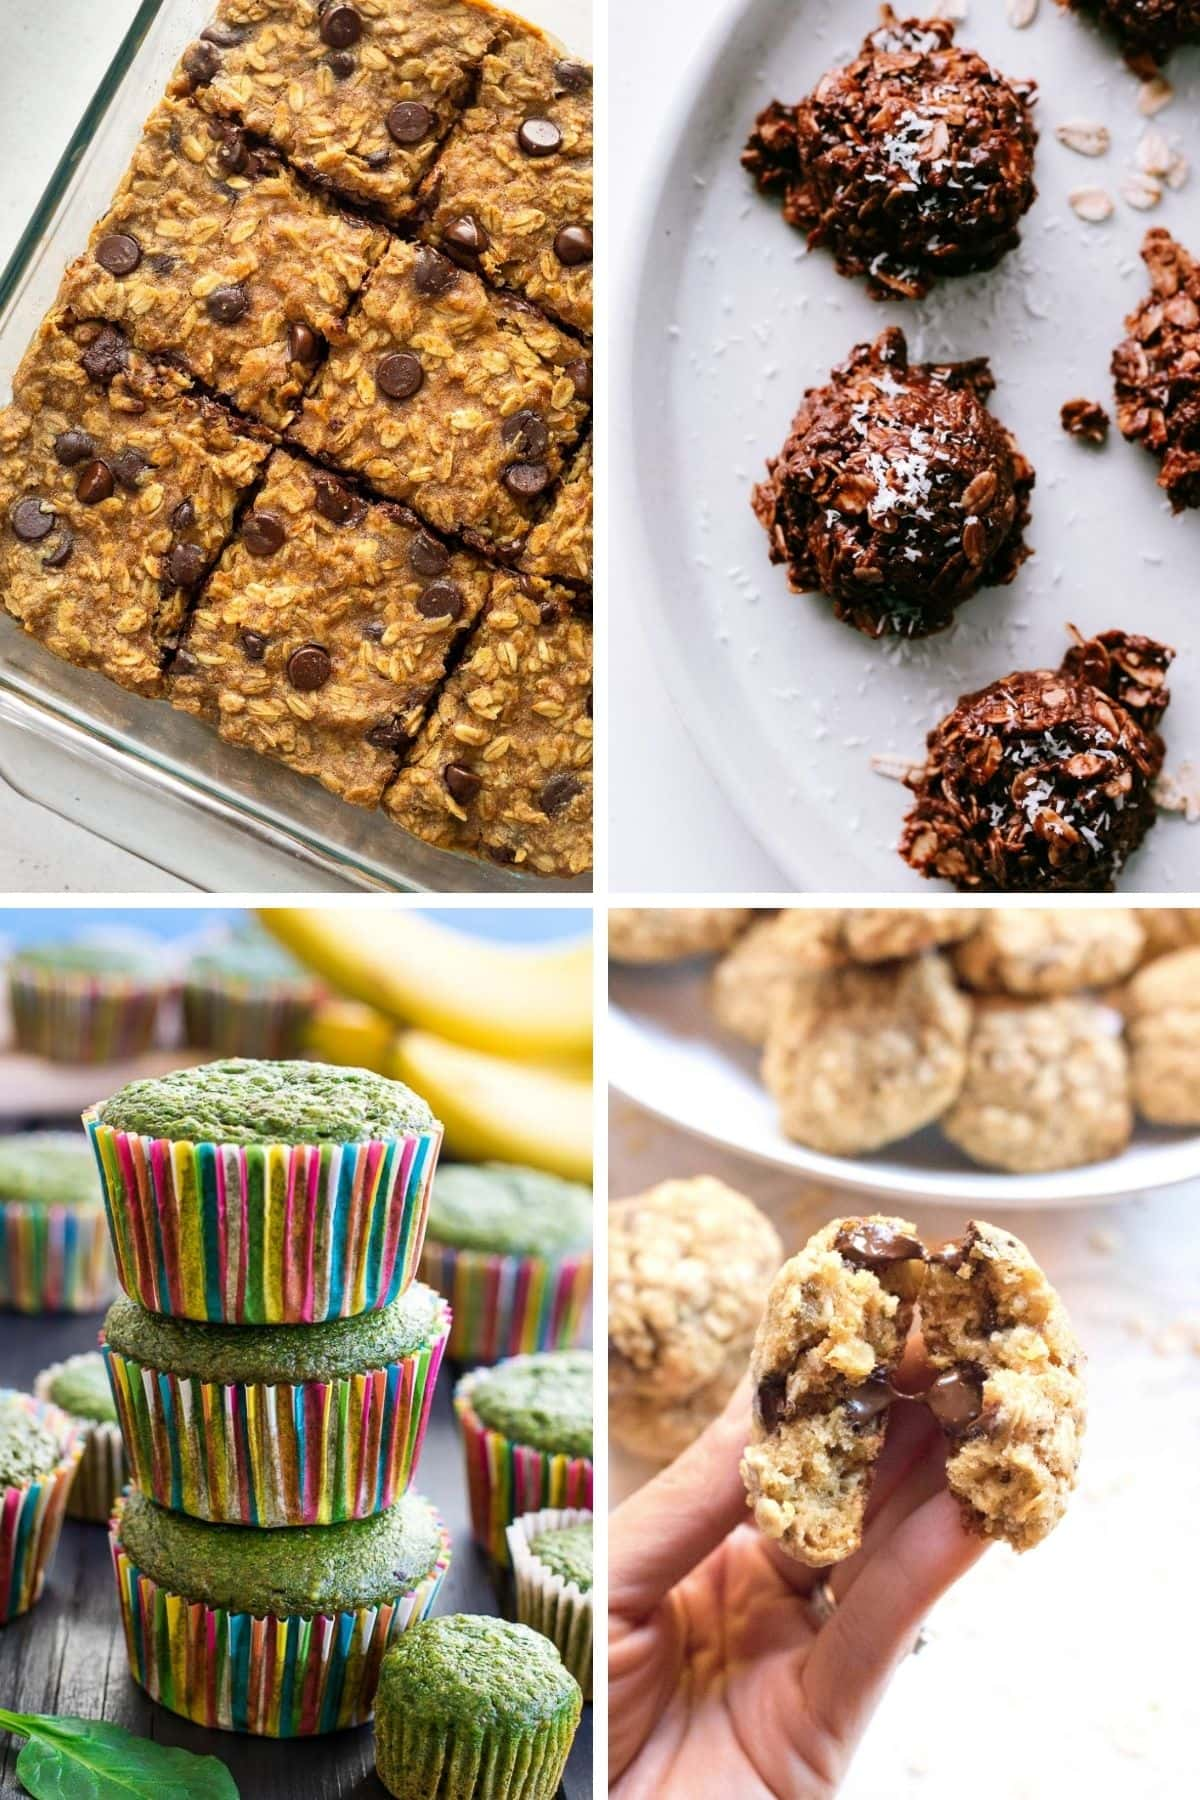 Collage of healthy cookies, bars and muffins.